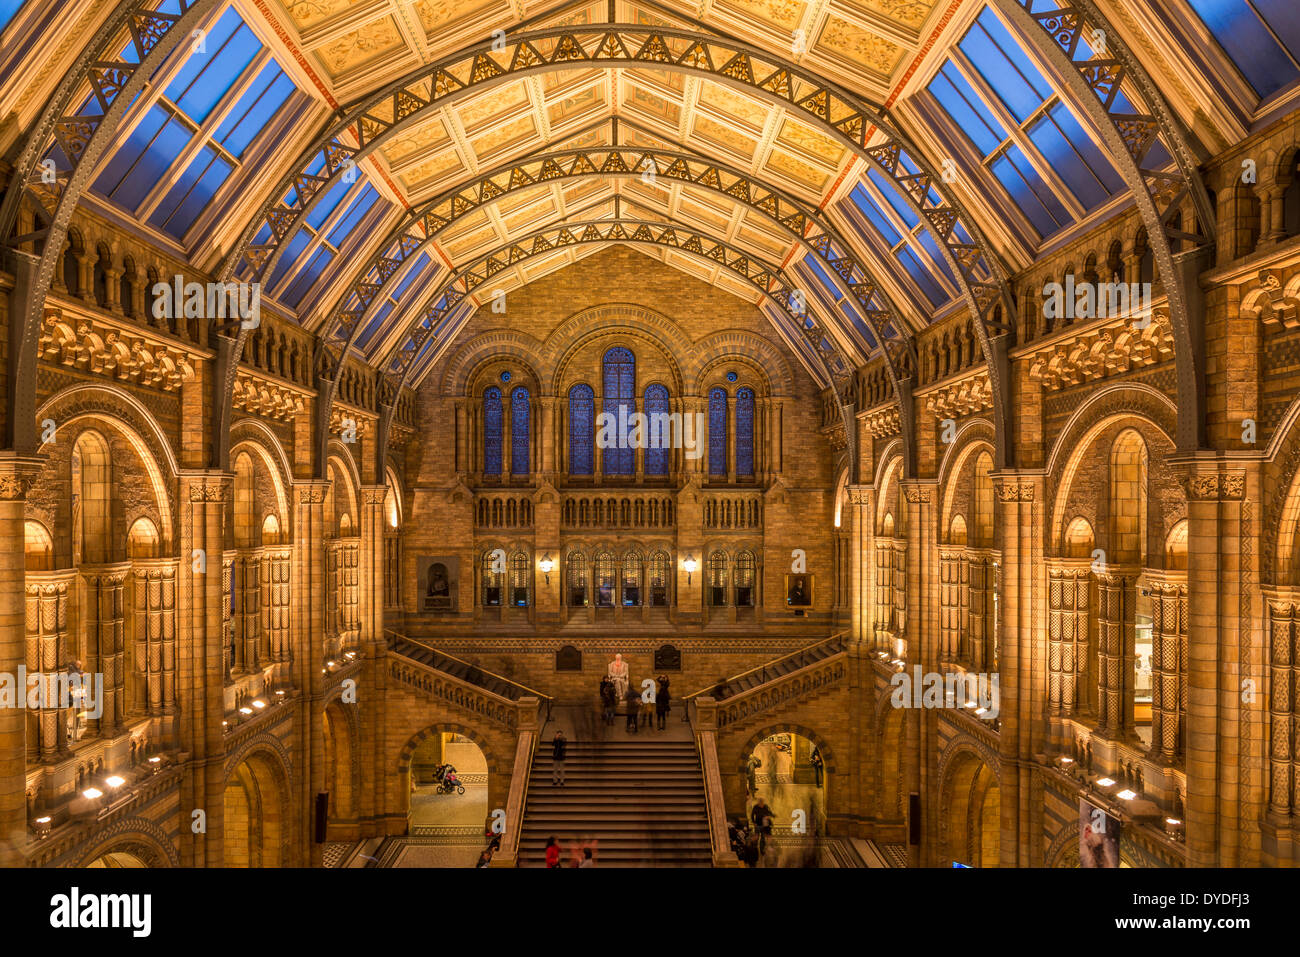 The Central Hall in Natural History Museum in London. - Stock Image